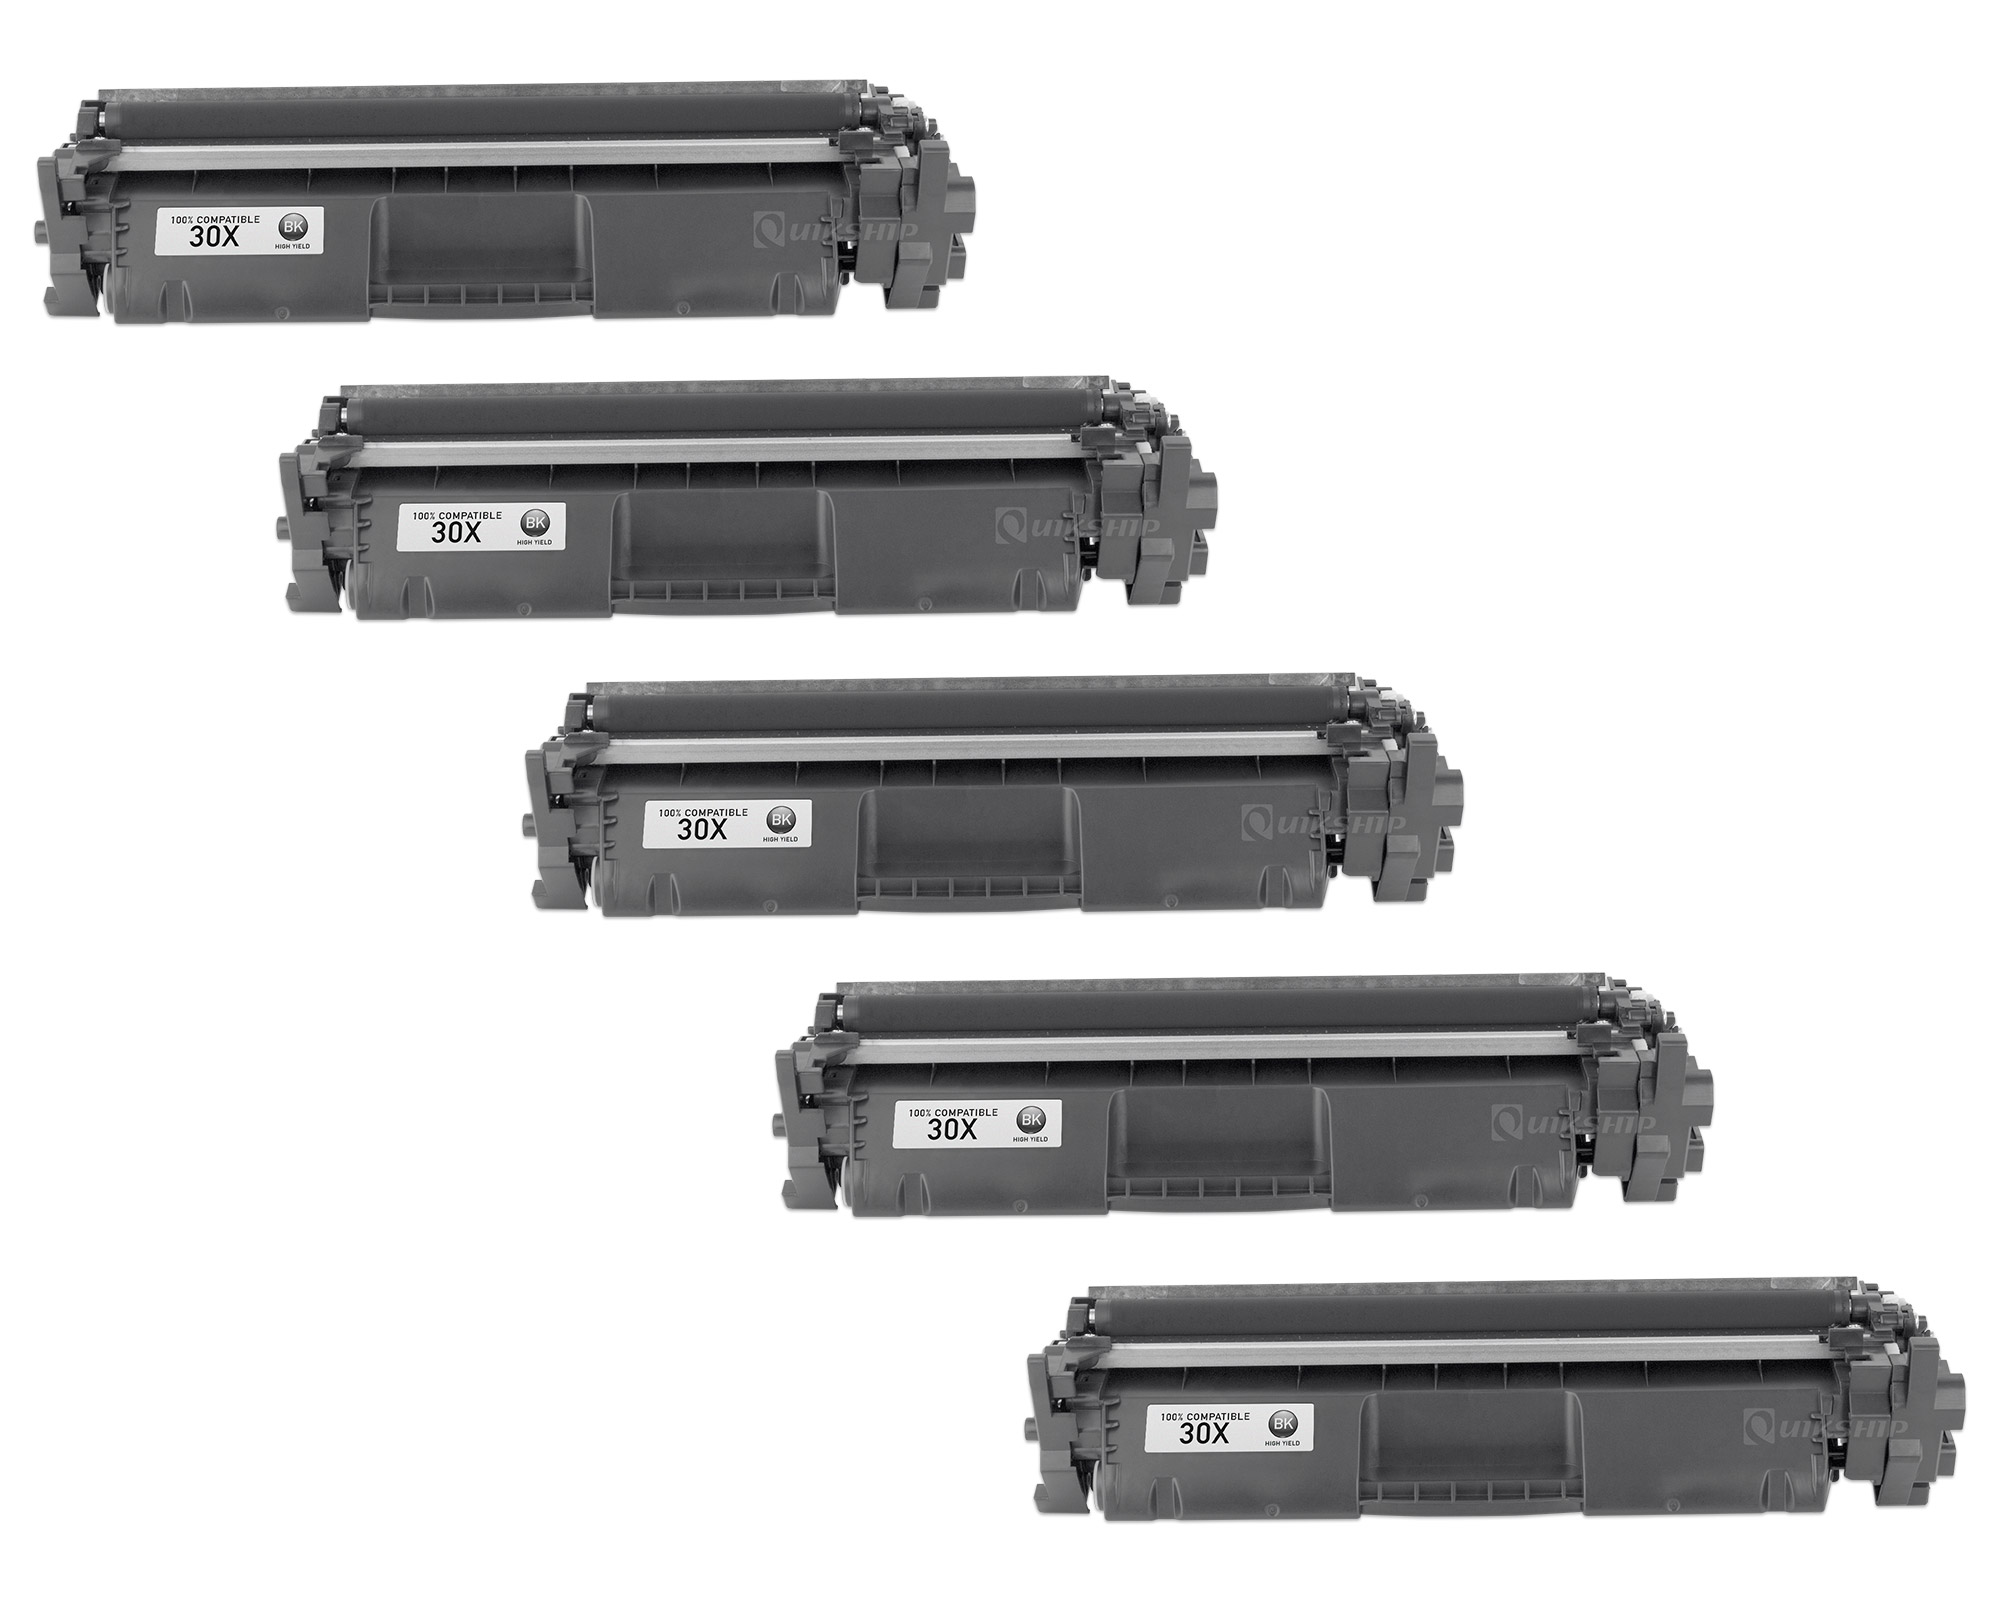 Tonner For Printer Hp Laserjet Pro Mfp M227fdw Toner Cartridge